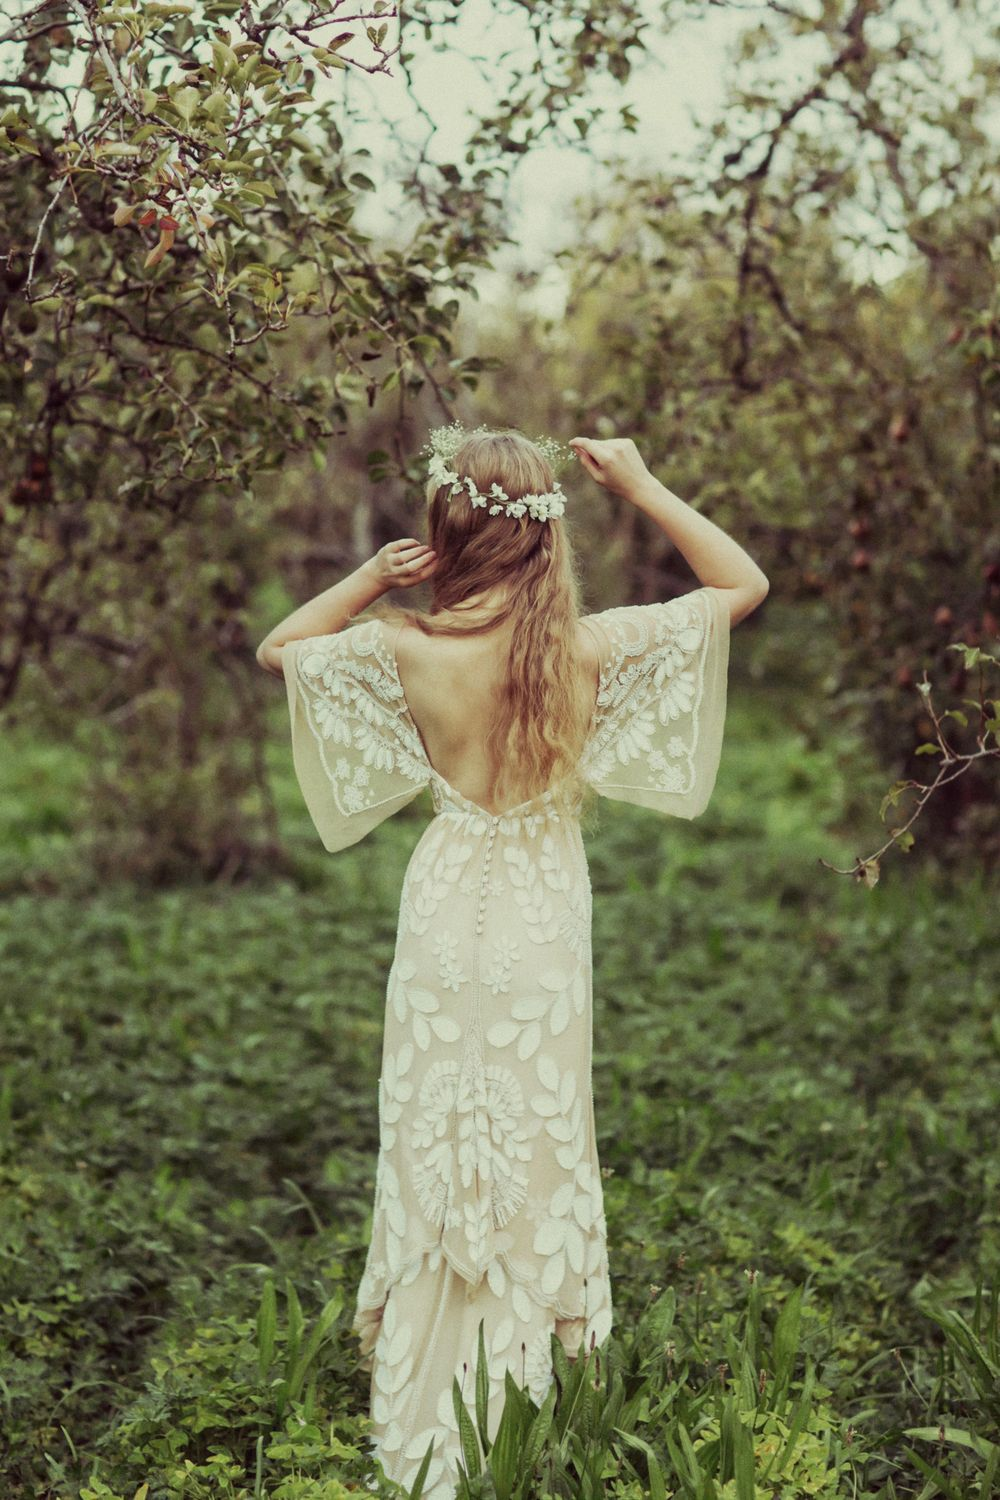 young love campaigng lohobride wedding dress pinterest